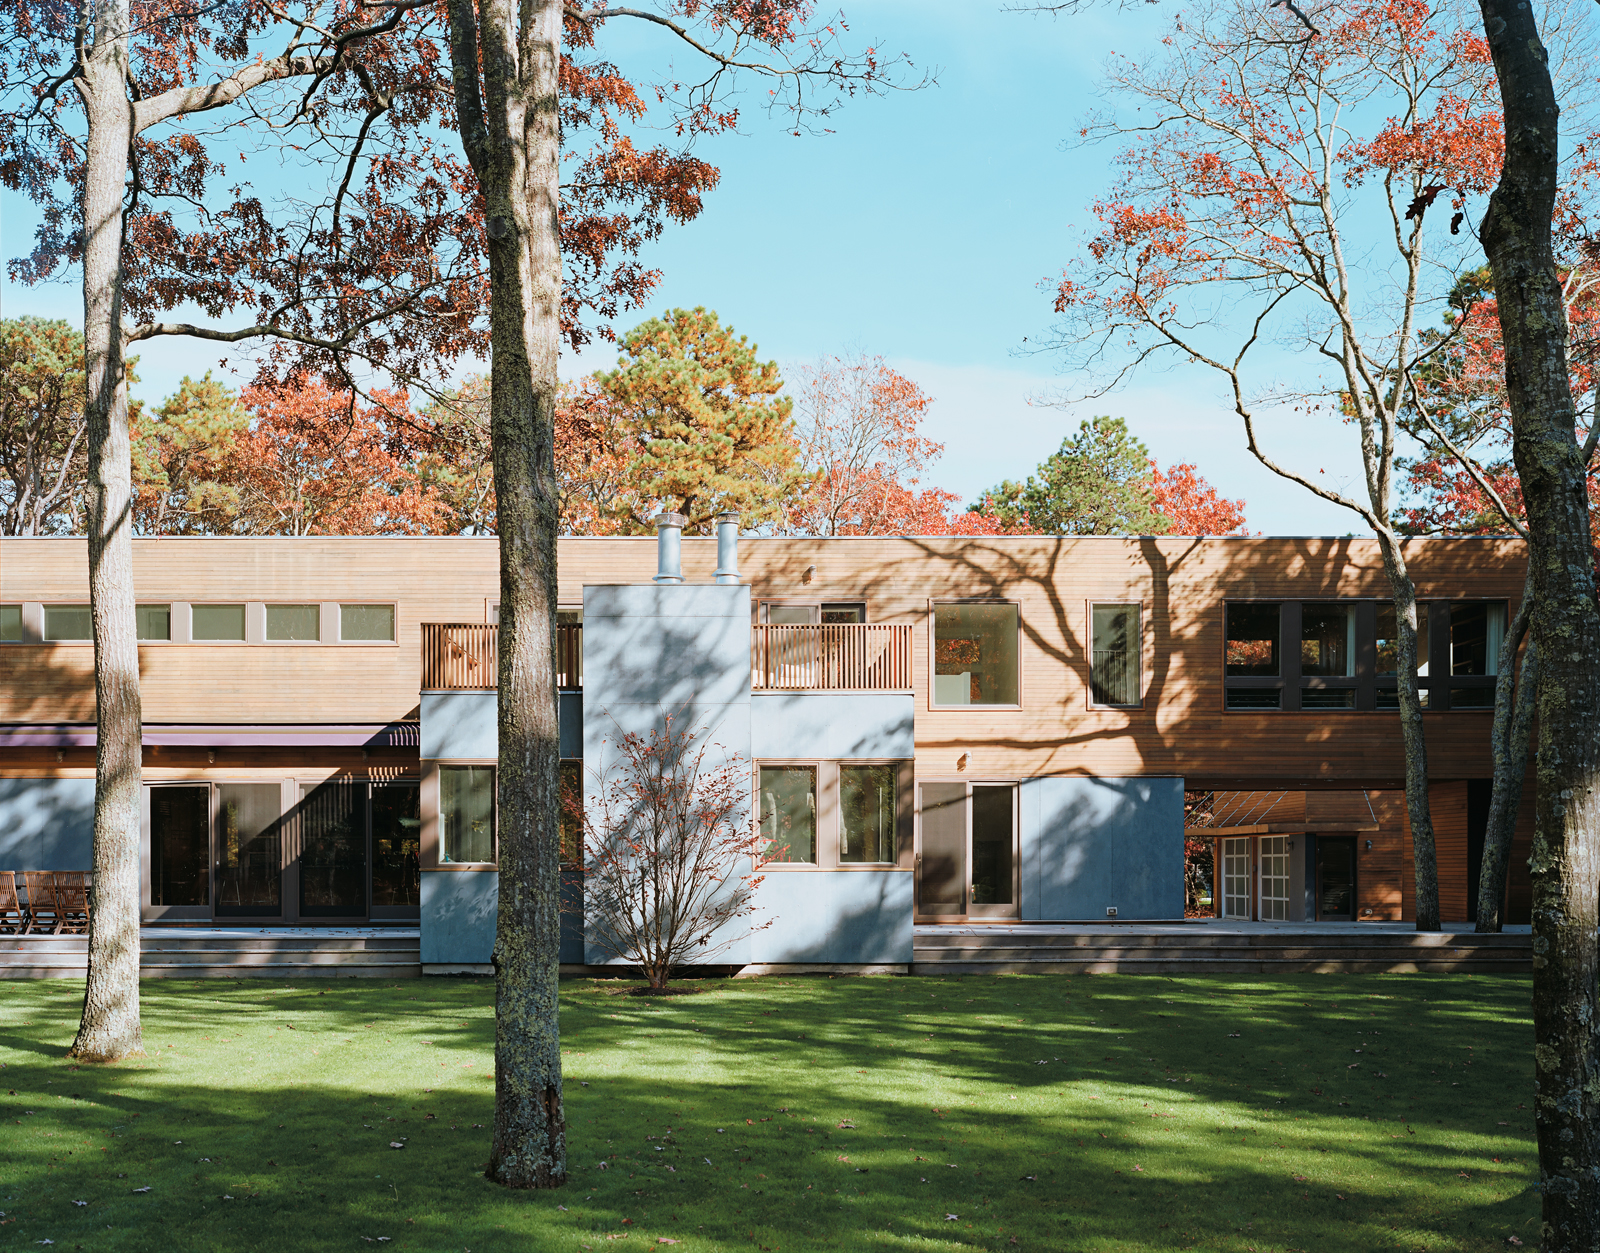 Architect Joseph Tanney says the house was designed as a safe haven for Wexler and Zimmerman's children.